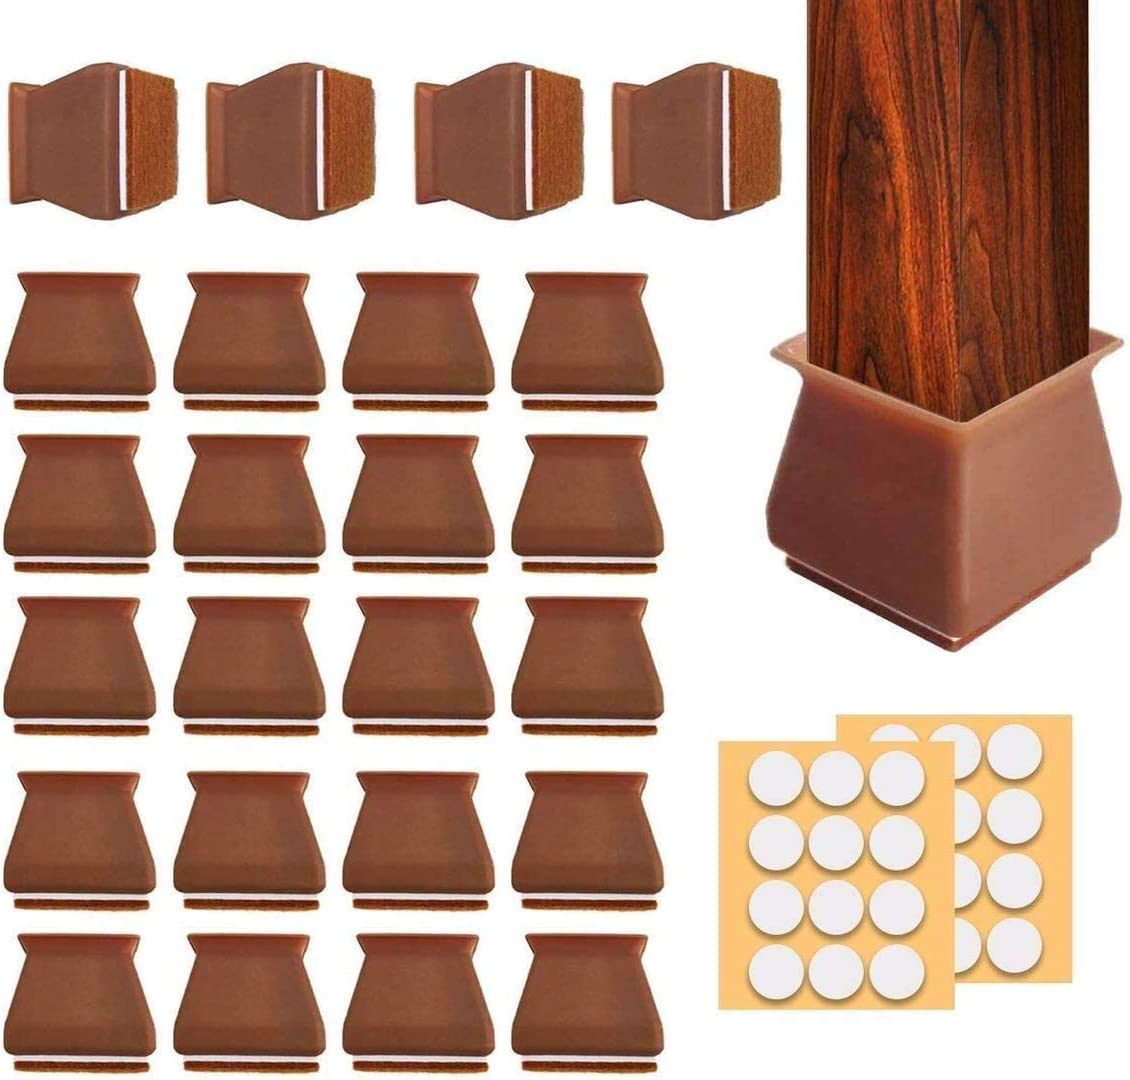 24Pcs Chair Leg Caps Square,1.37-1.57''Chair Leg Protectors for Hardwood Floors,Silicone Table Leg Floor Protectors with Felt Pads,Anti-Slip Furniture Silicon Protection Covers(Adhesive Dots As Gift)